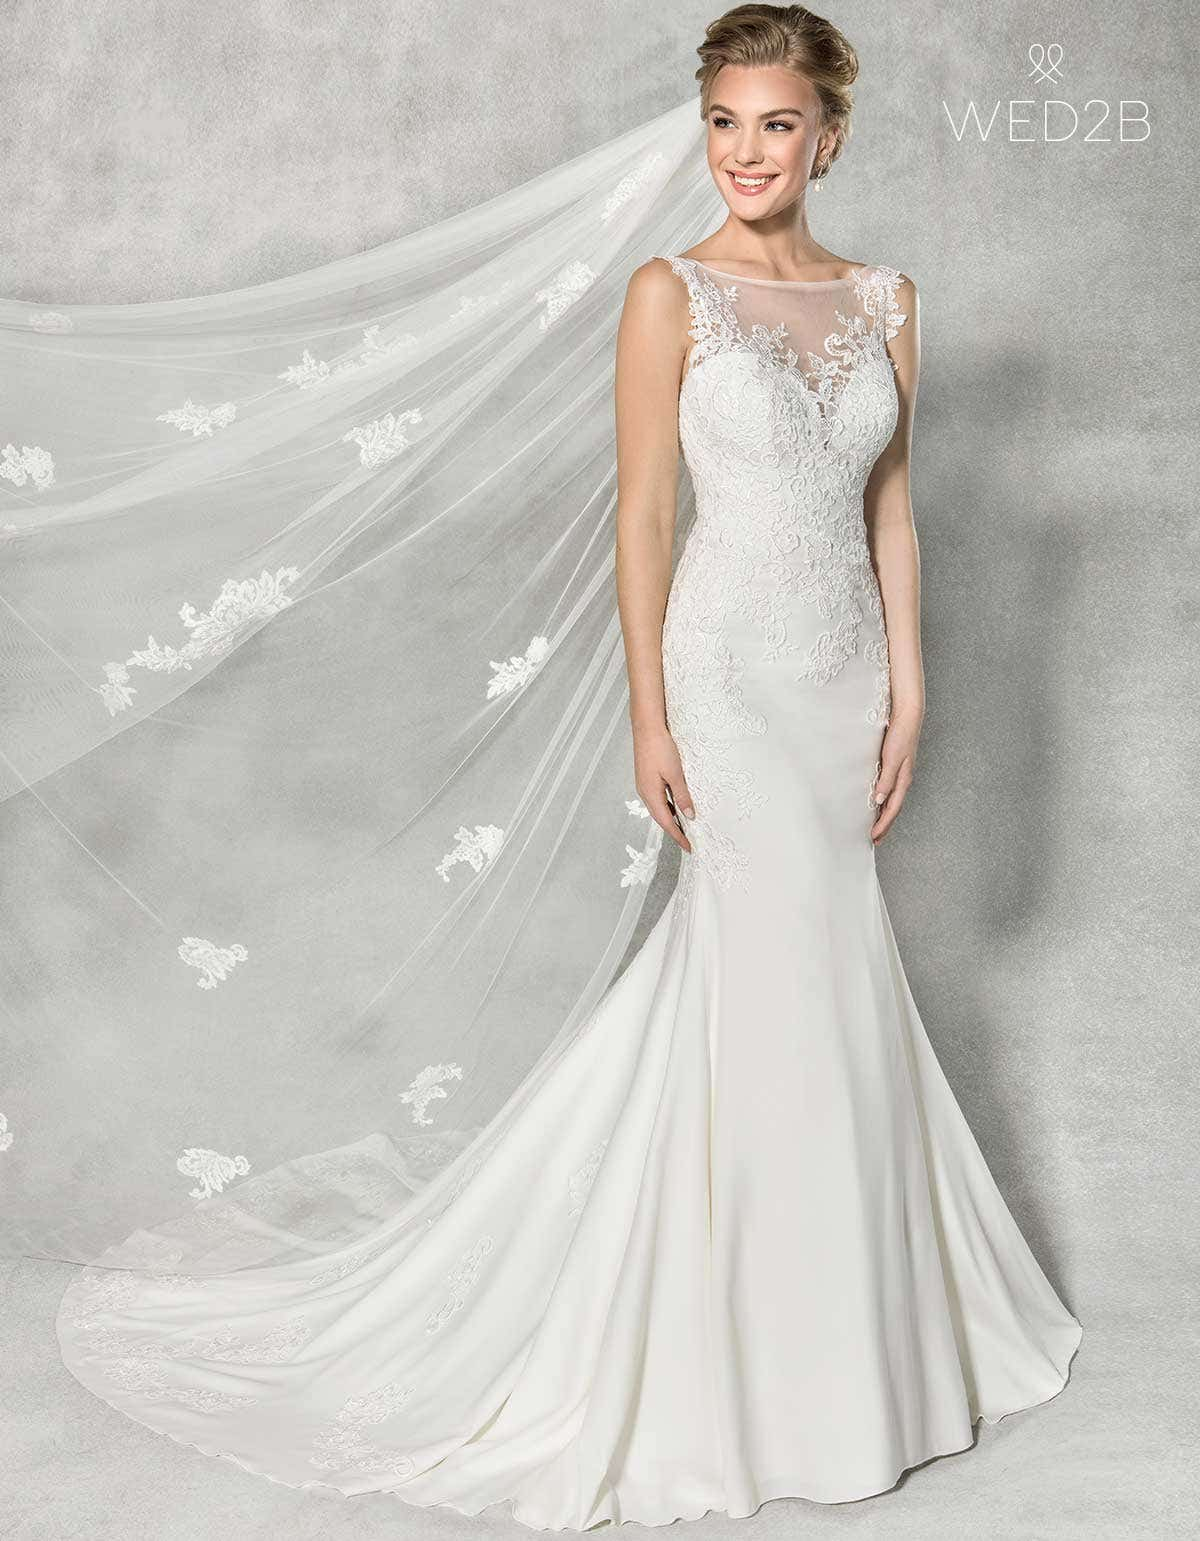 Wedding Dresses For Rectangle Body Shape Wed2b Uk Blog